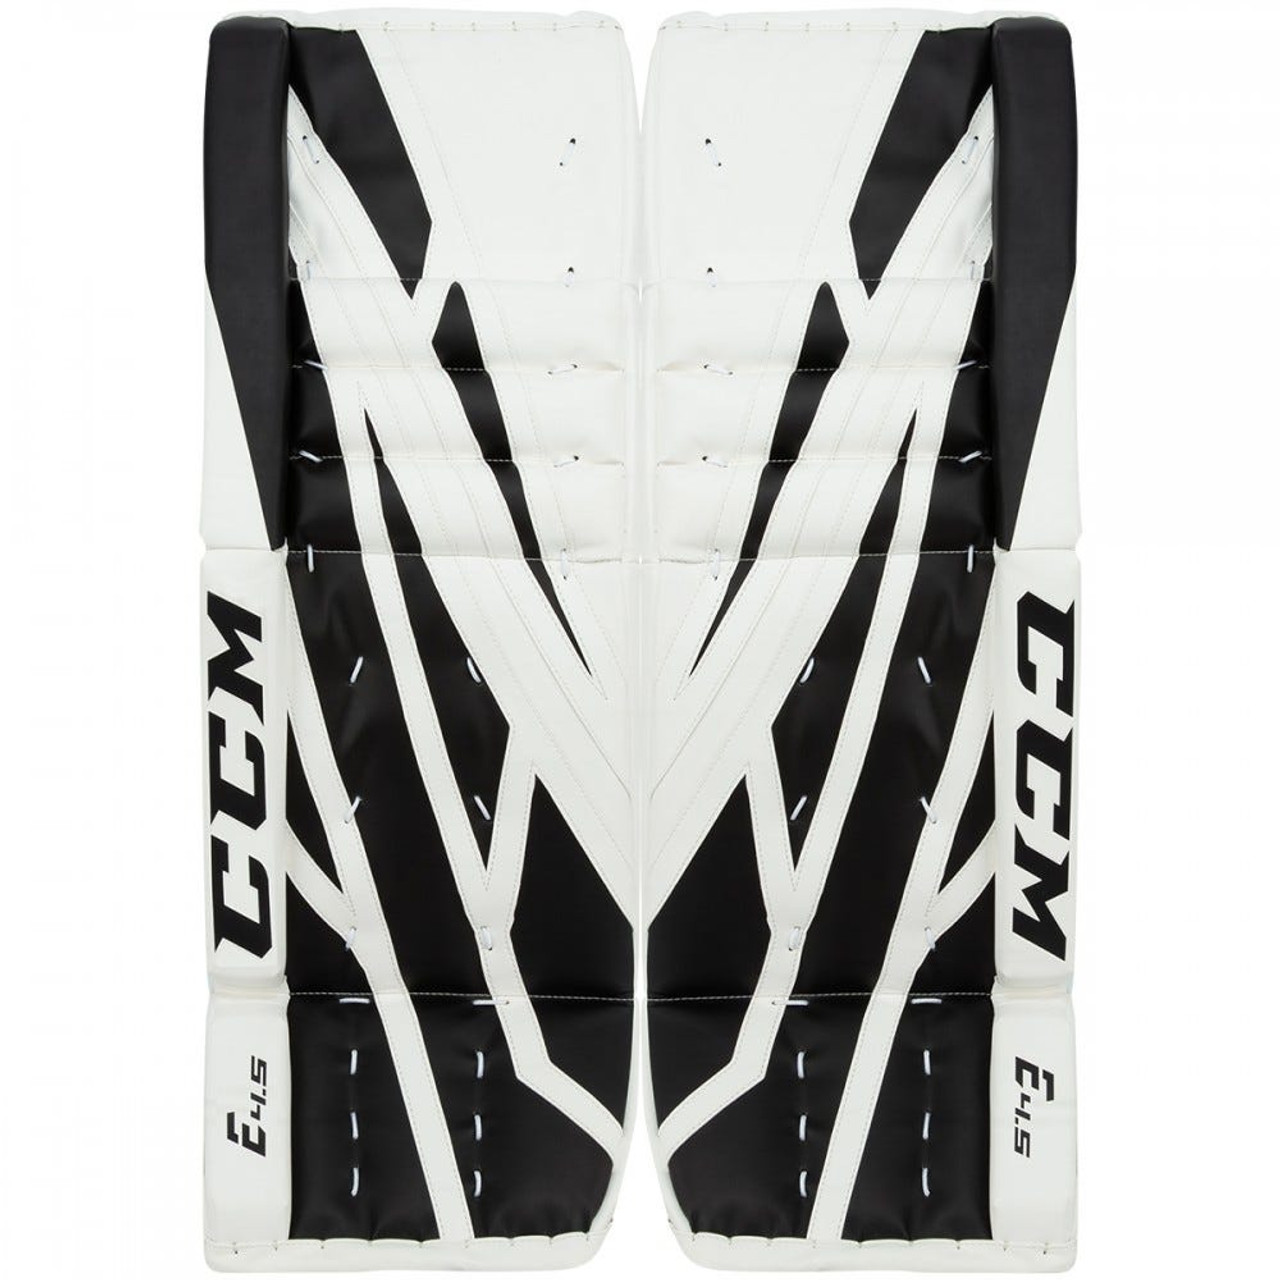 CCM Extreme Flex E4 5 Junior Goalie Pads